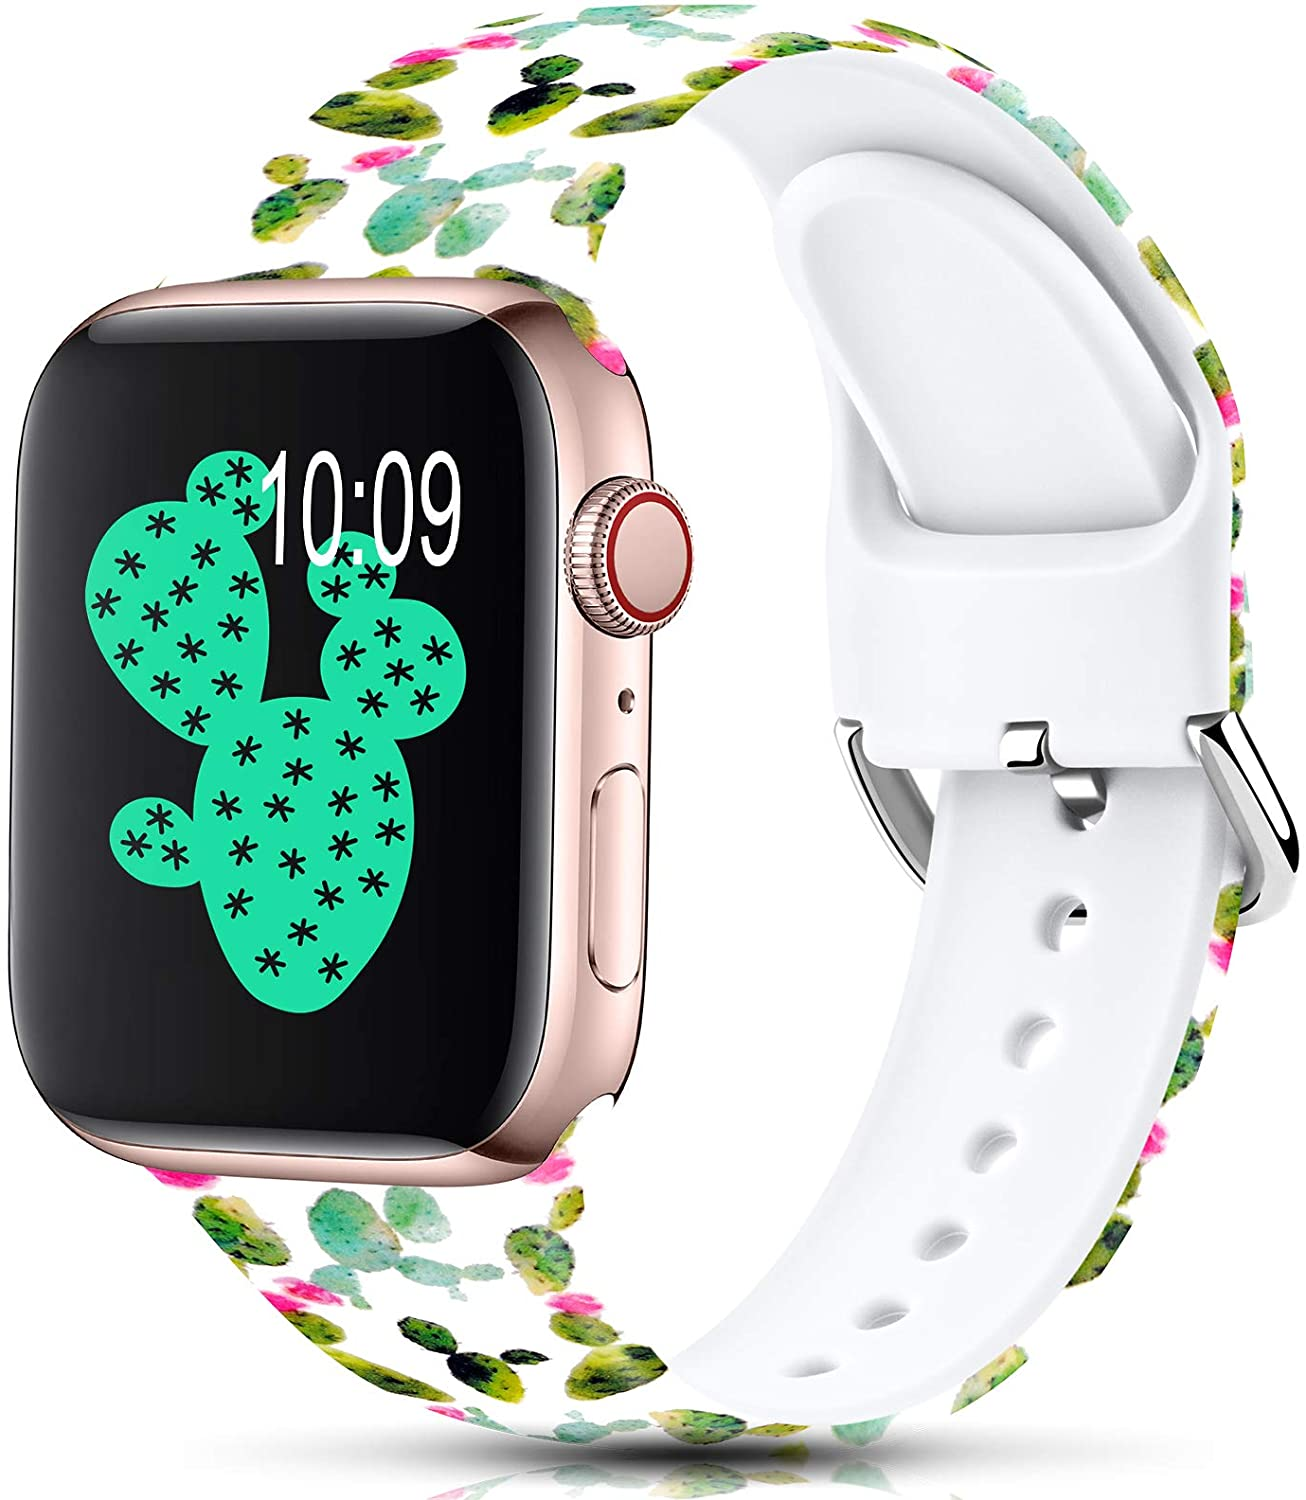 Sport Band Compatible with Apple Watch Bands 38mm 40mm for Women Men,Floral Silicone Printed Fadeless Pattern Replacement Strap Band for iWatch Series 3 6 5 4 2 1 SE,Catus,42/44 mm S/M